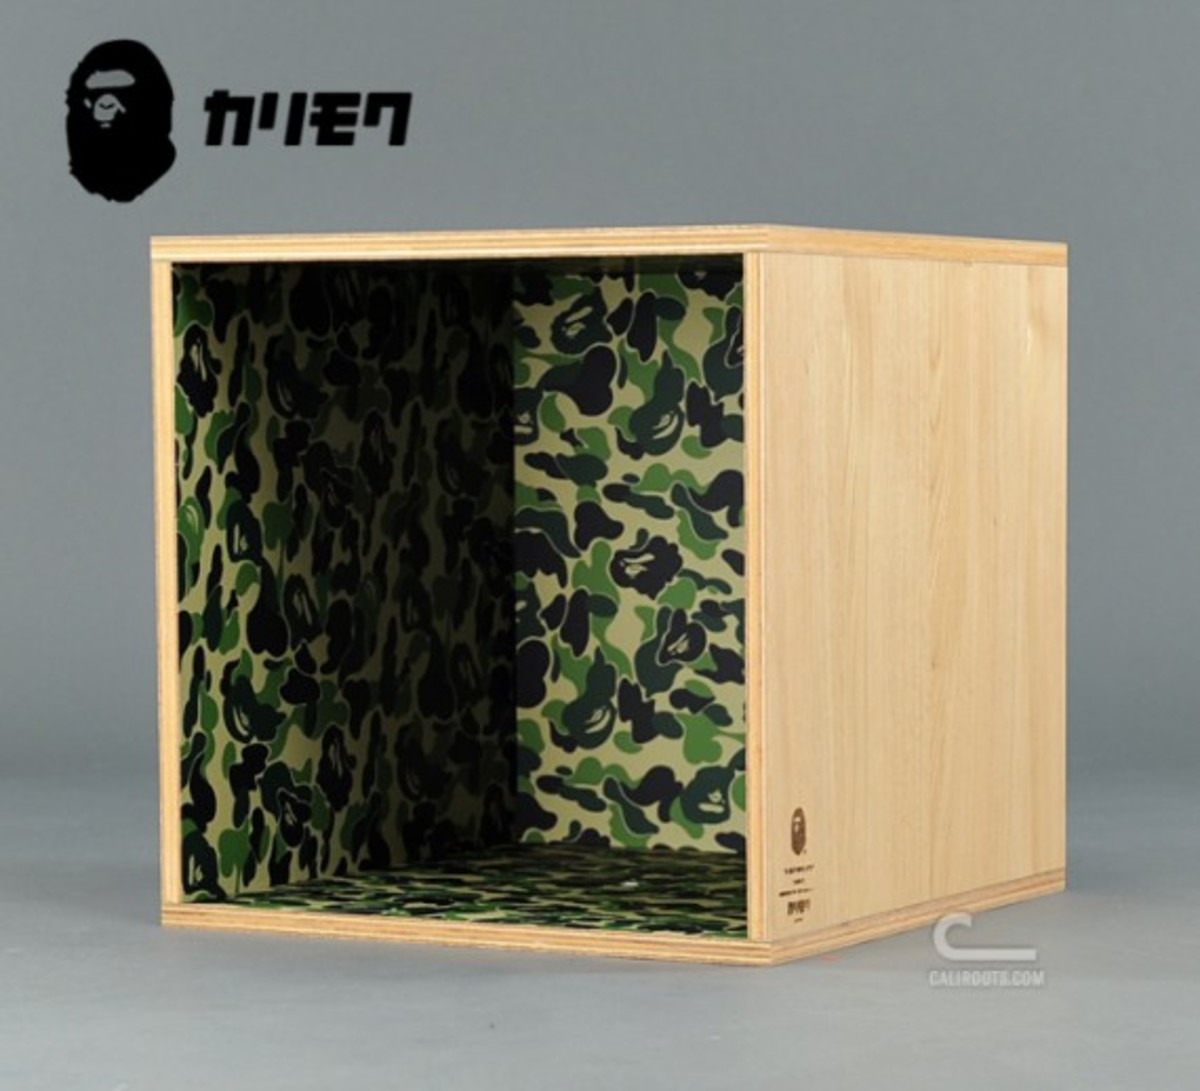 a-bathing-ape-medicom-toy-karimoku-bape-camo-furniture-04